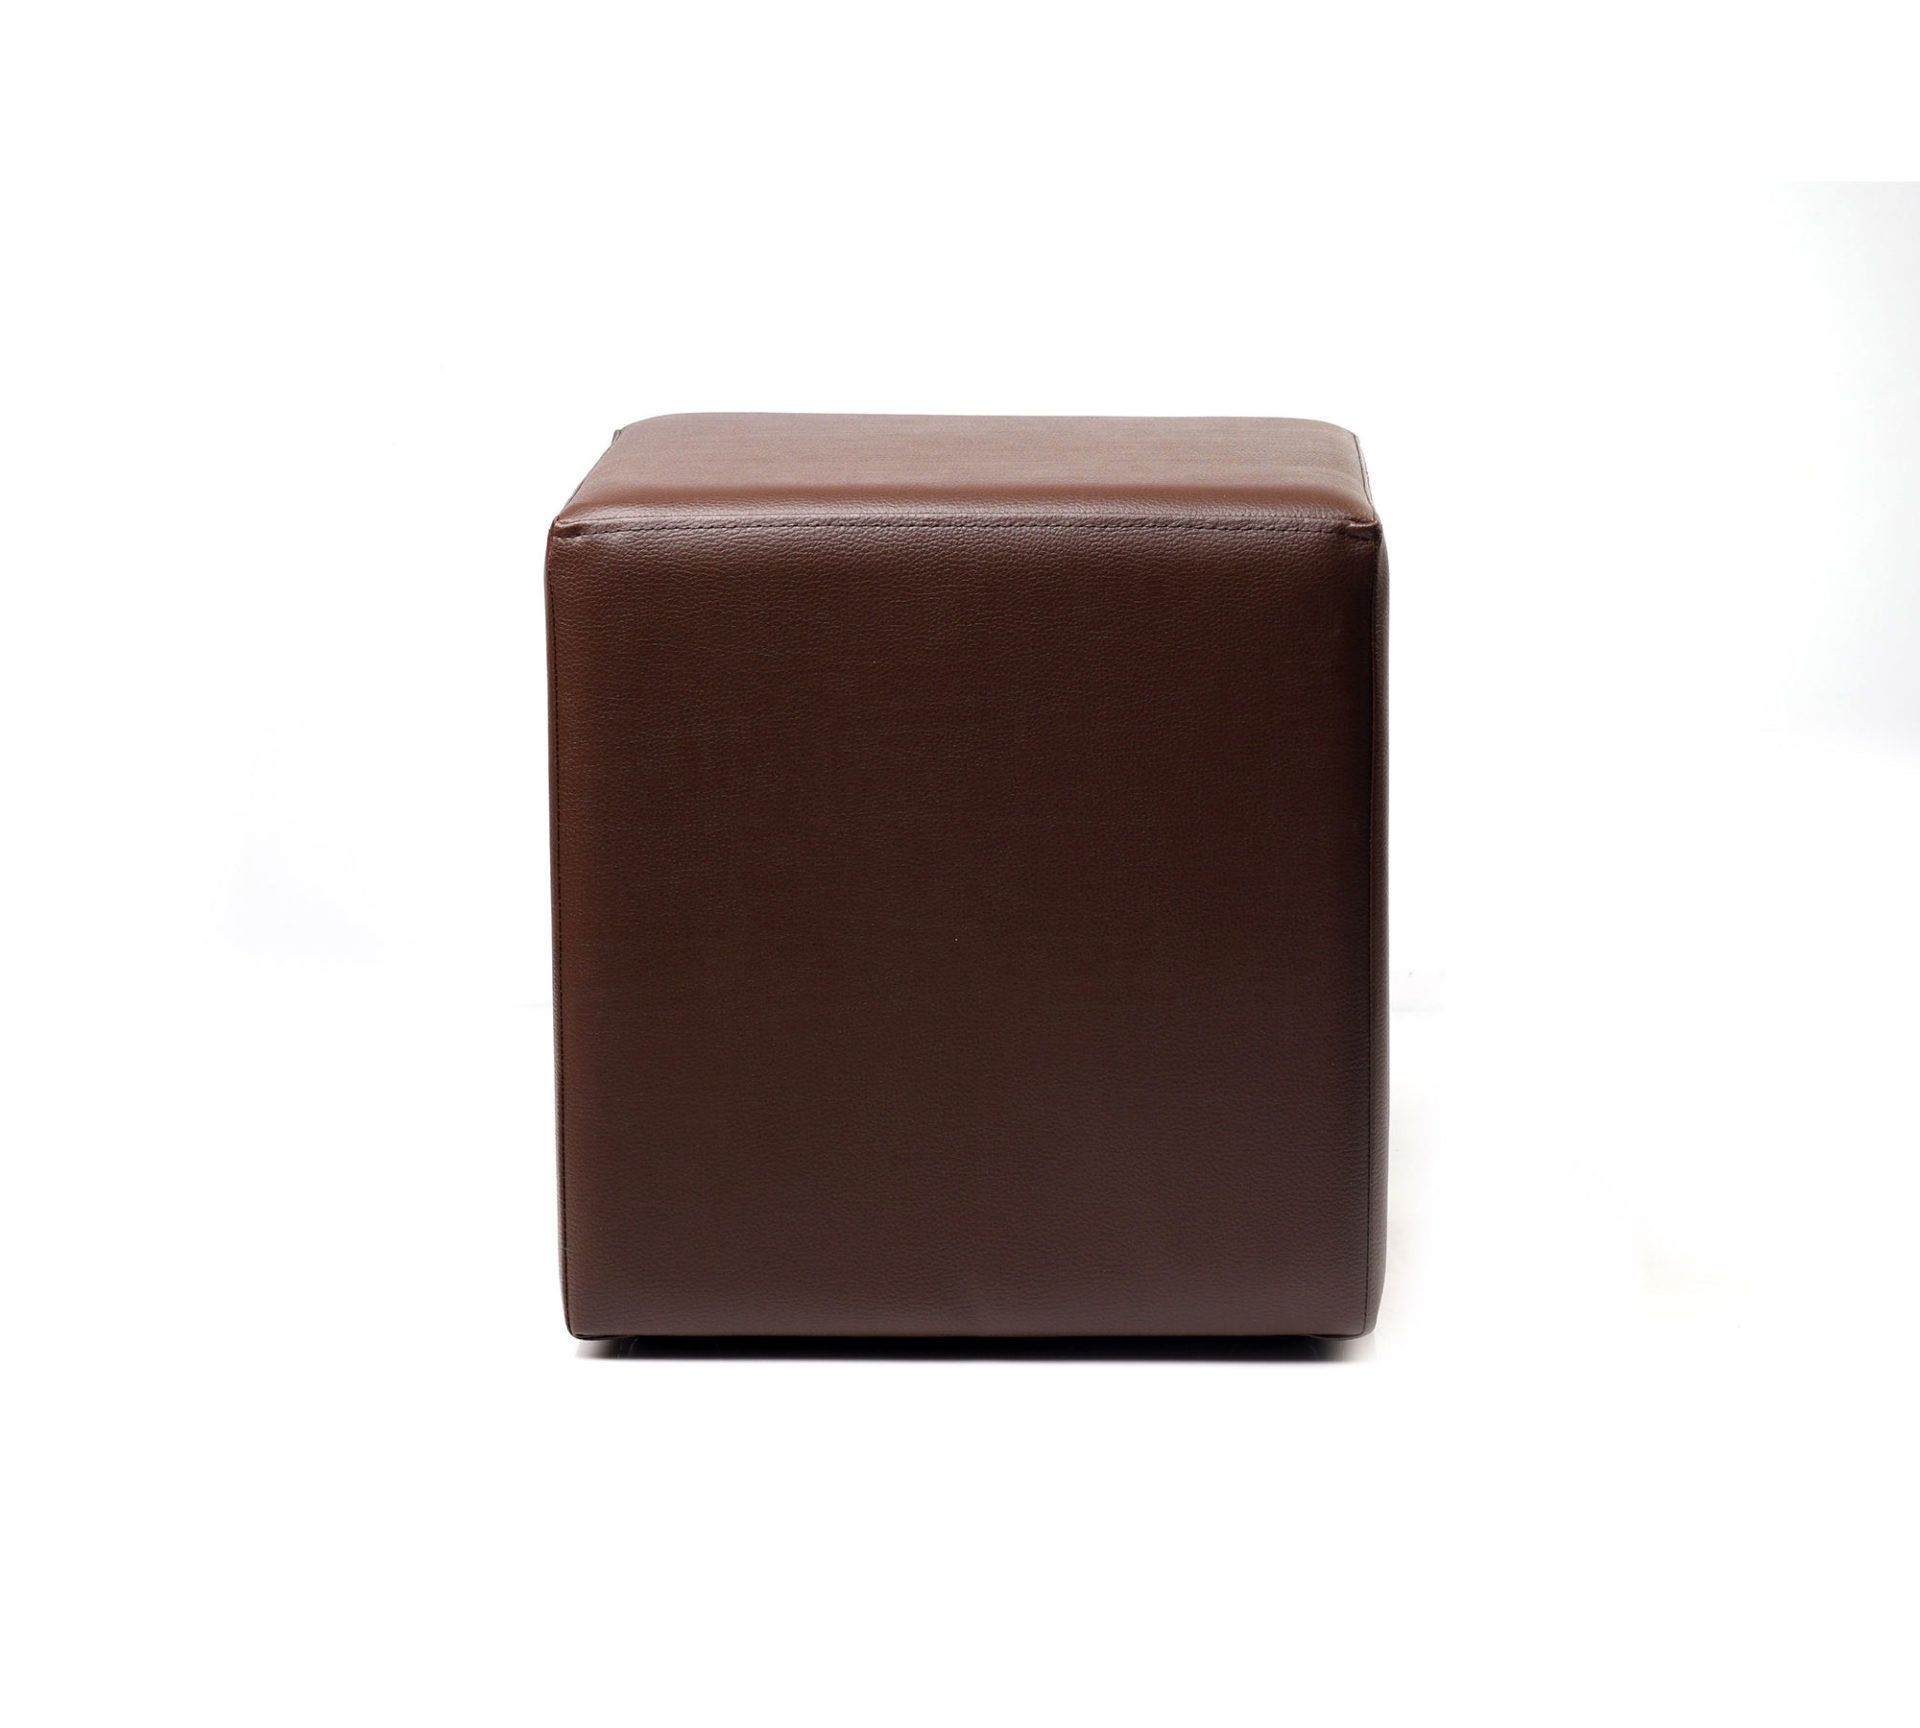 ottoman square chocolate01